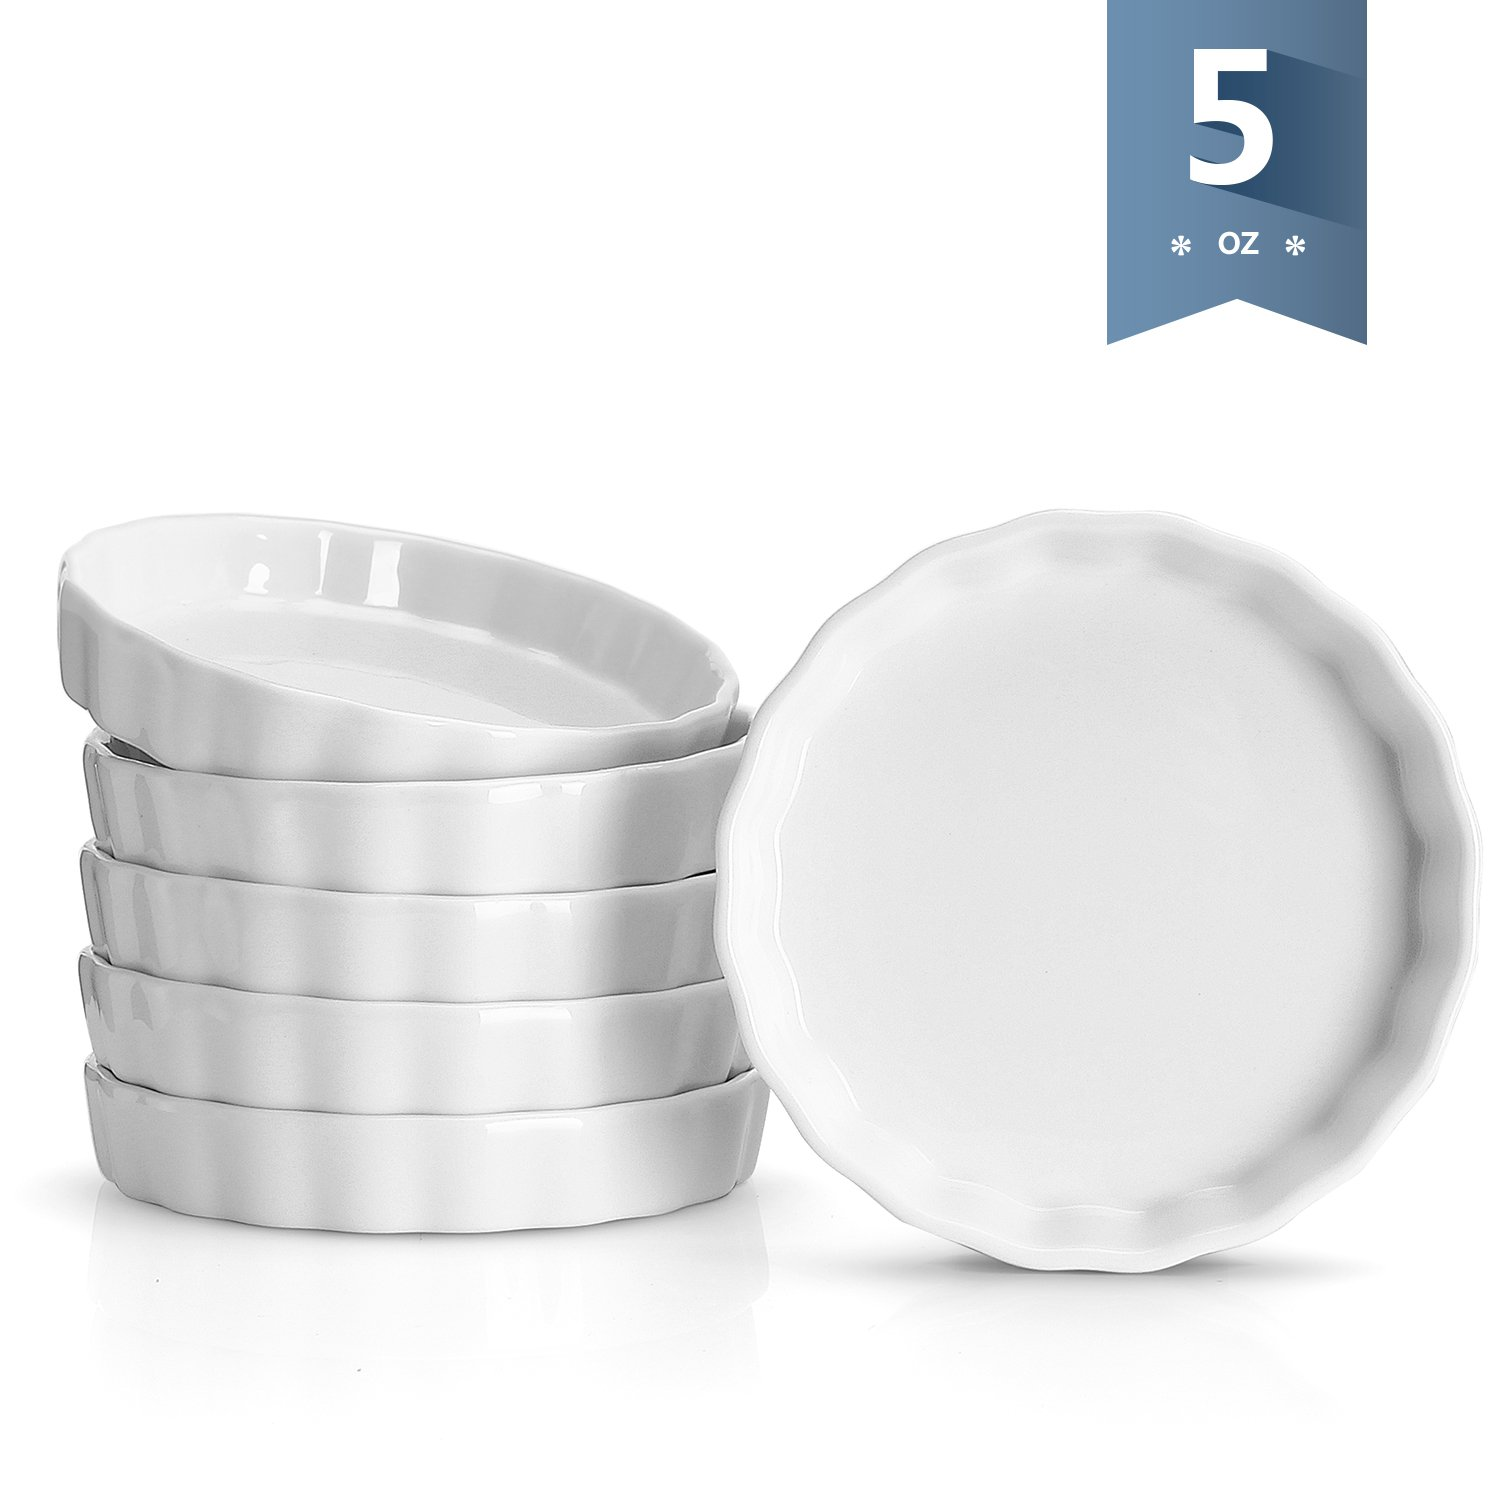 Sweese 5103 Porcelain Ramekins Round Shape - 5 Ounce for Creme Brulee - Set of 6, 4.8 x 0.8 Inch, White by Sweese